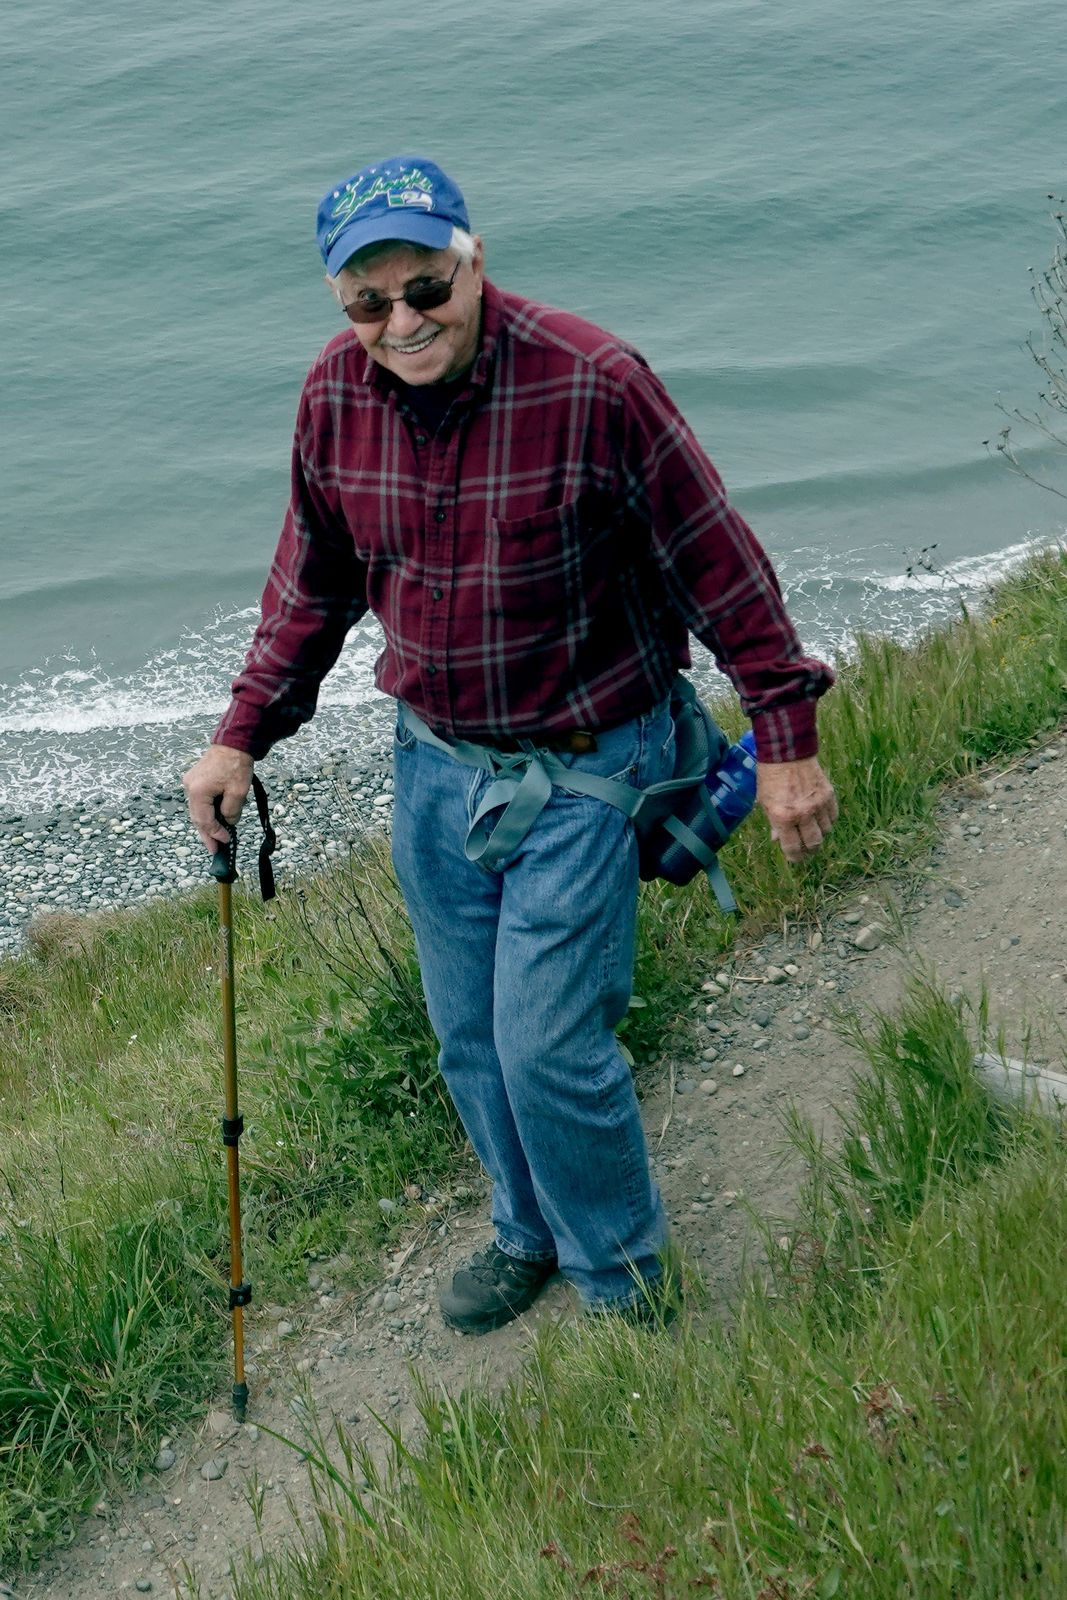 At 85 Bill is our senior hiker